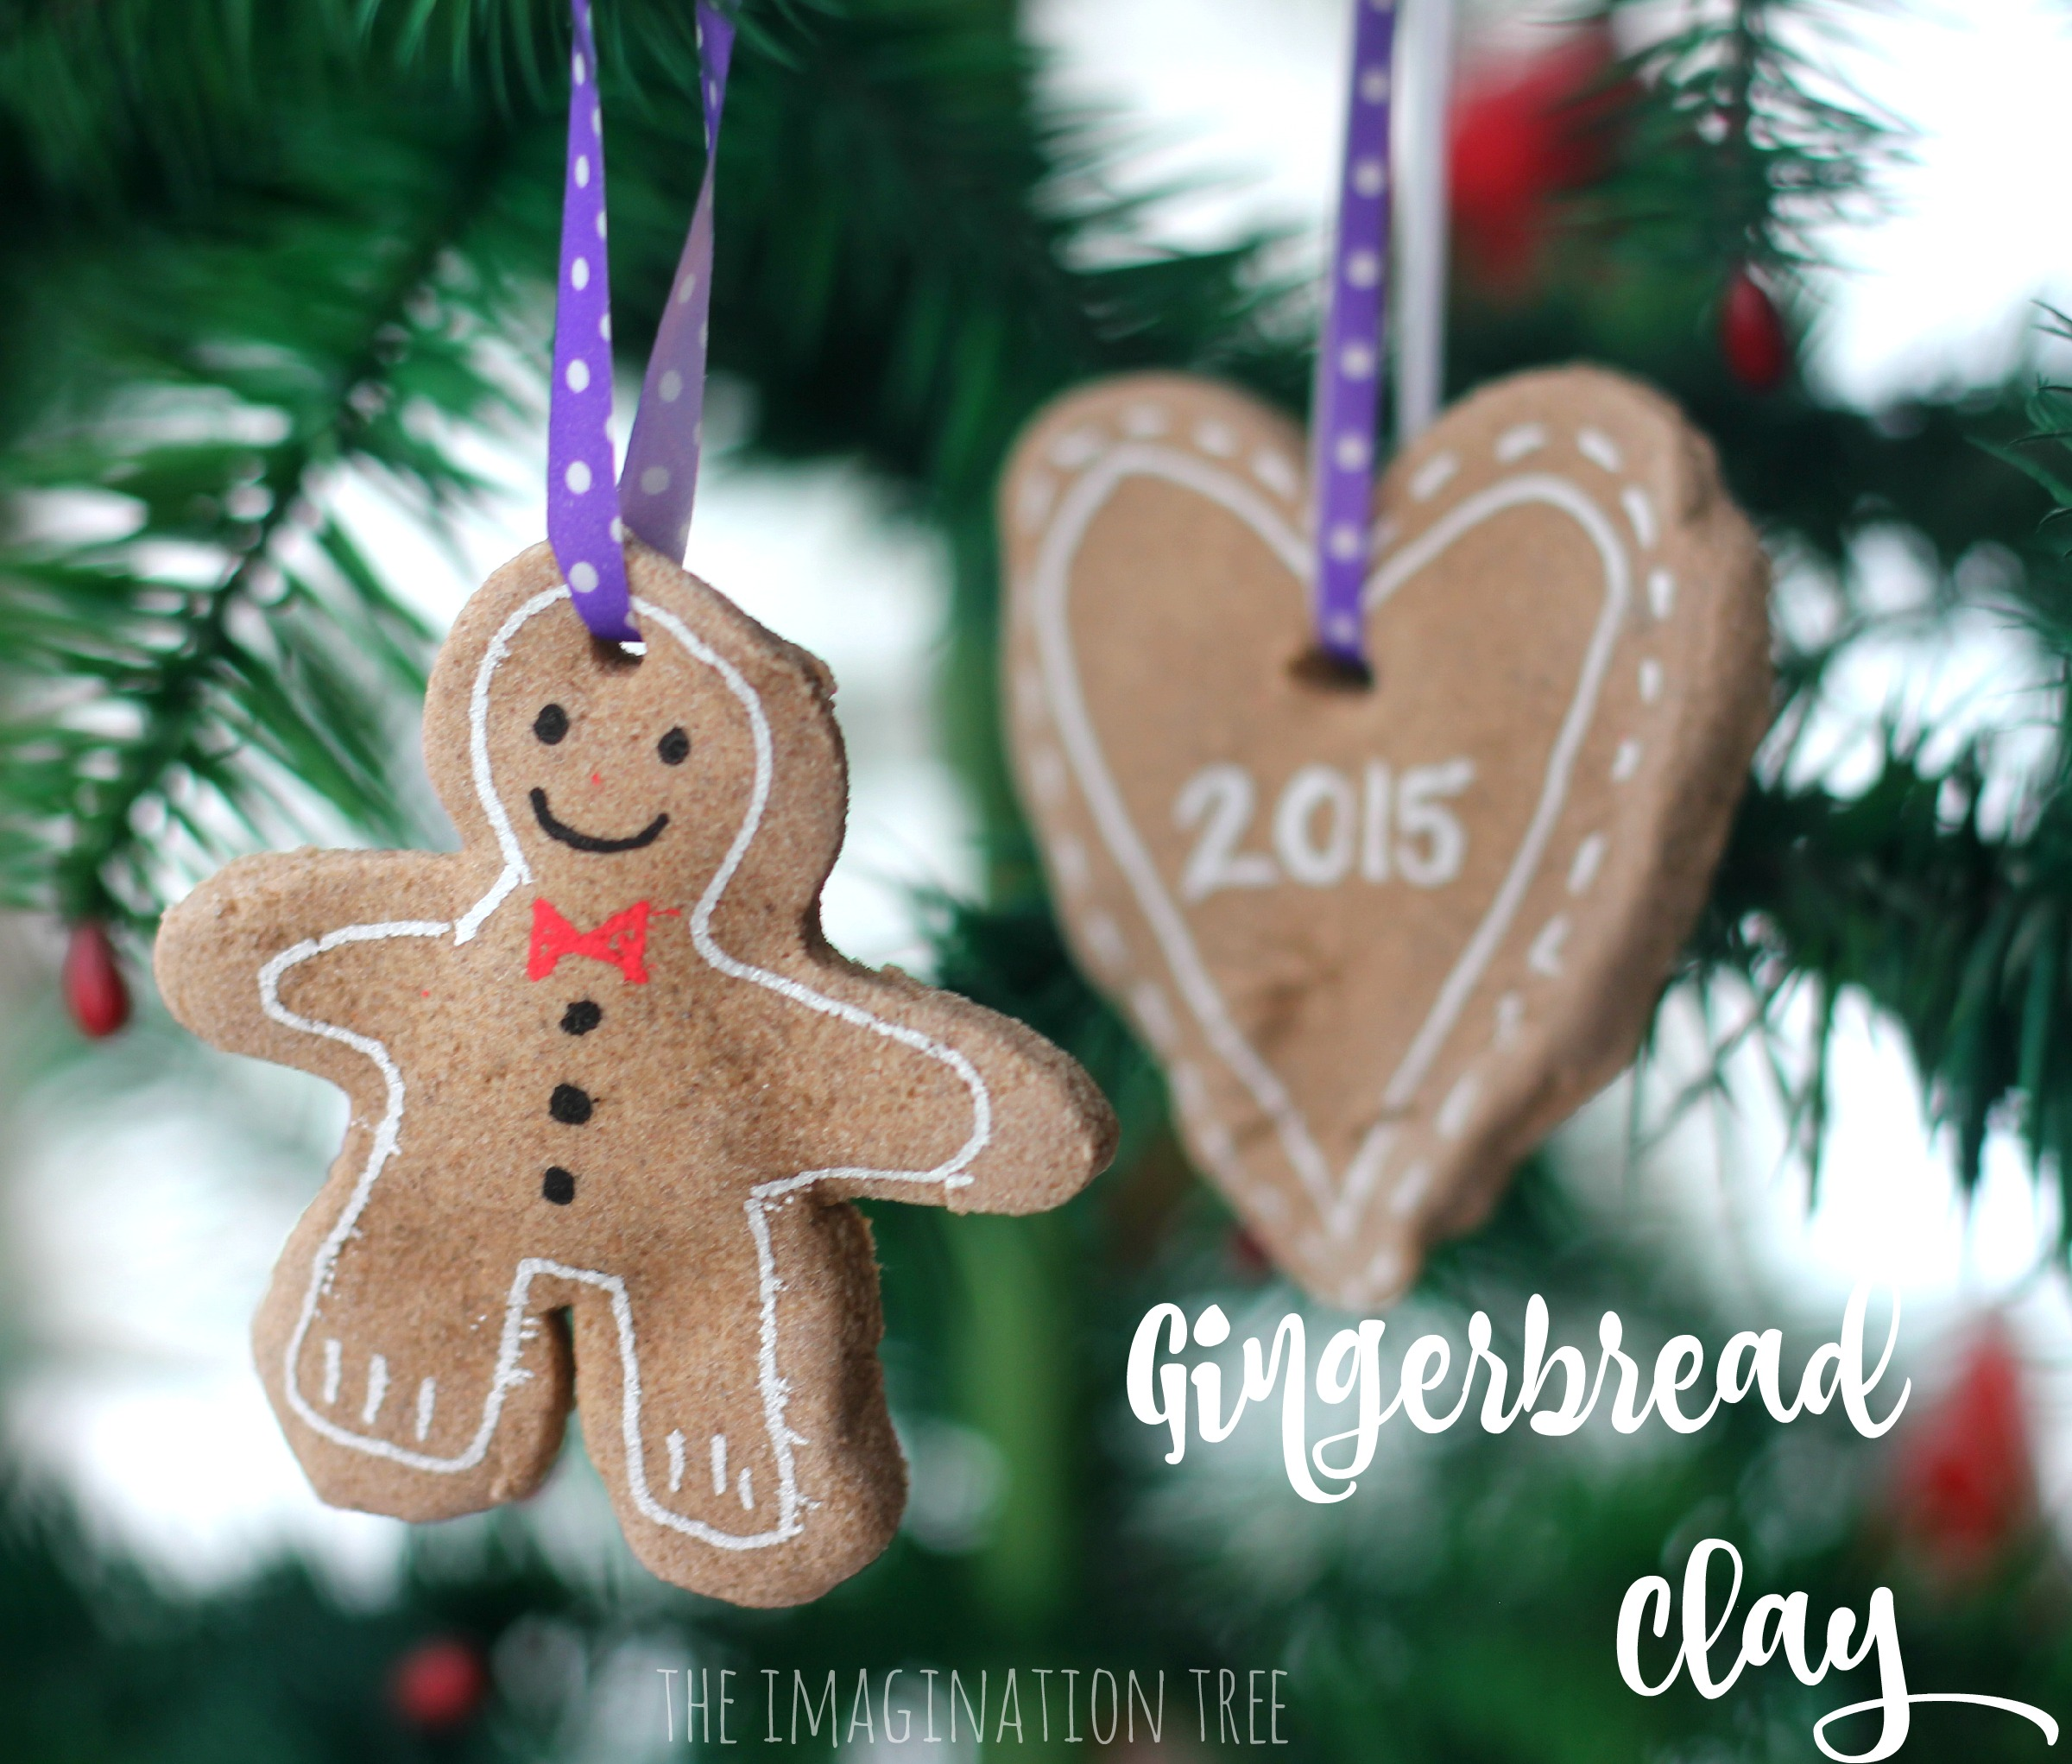 gingerbread clay recipe for making chrismas tree ornaments christmas - Gingerbread Christmas Decorations Beautiful To Look